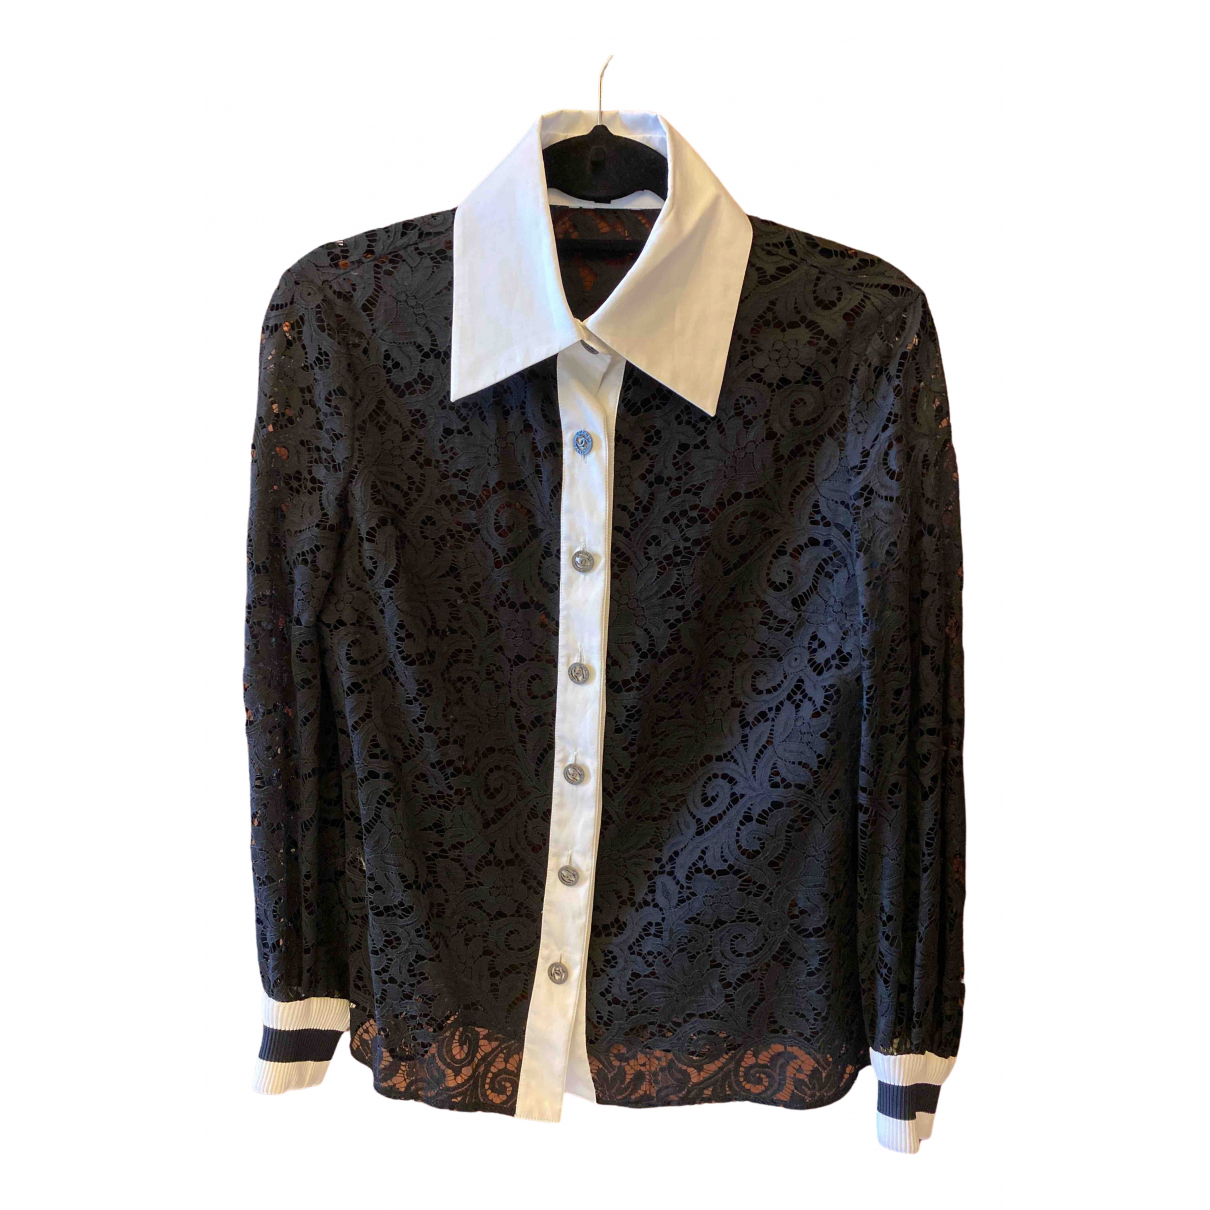 Chanel \N Black Lace  top for Women 34 FR